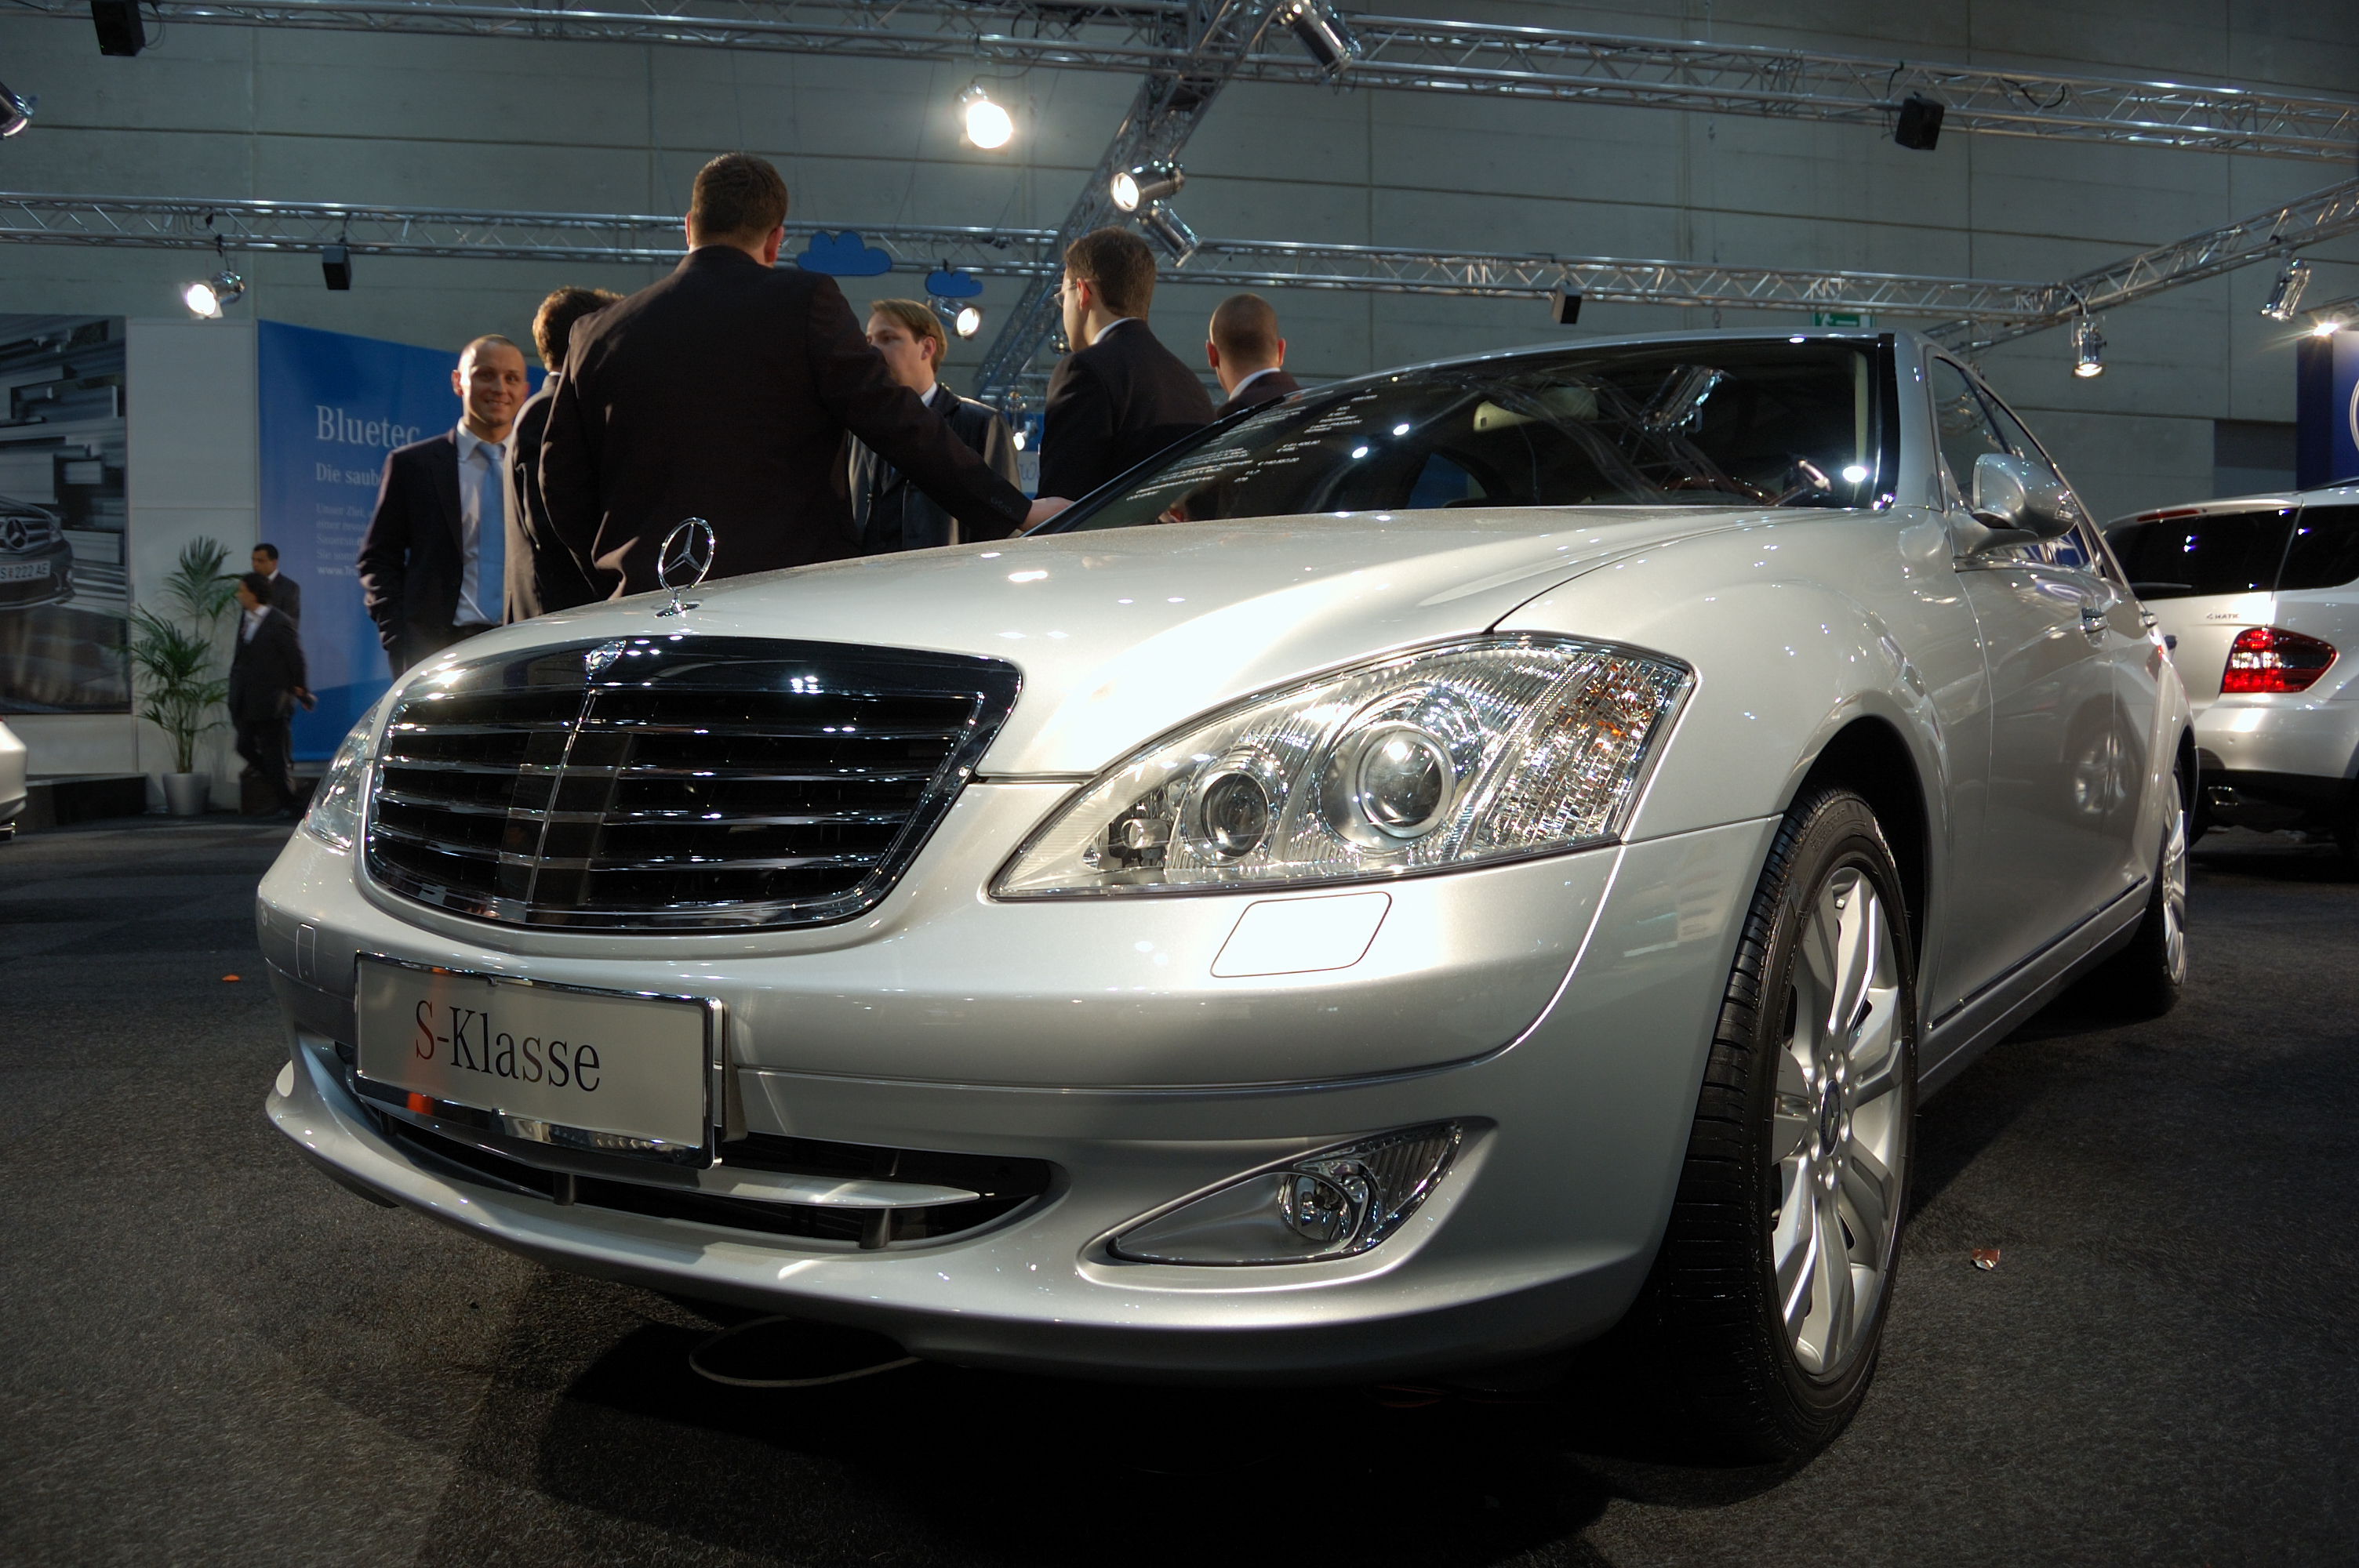 Benz s500 wiki images for Mercedes benz wiki